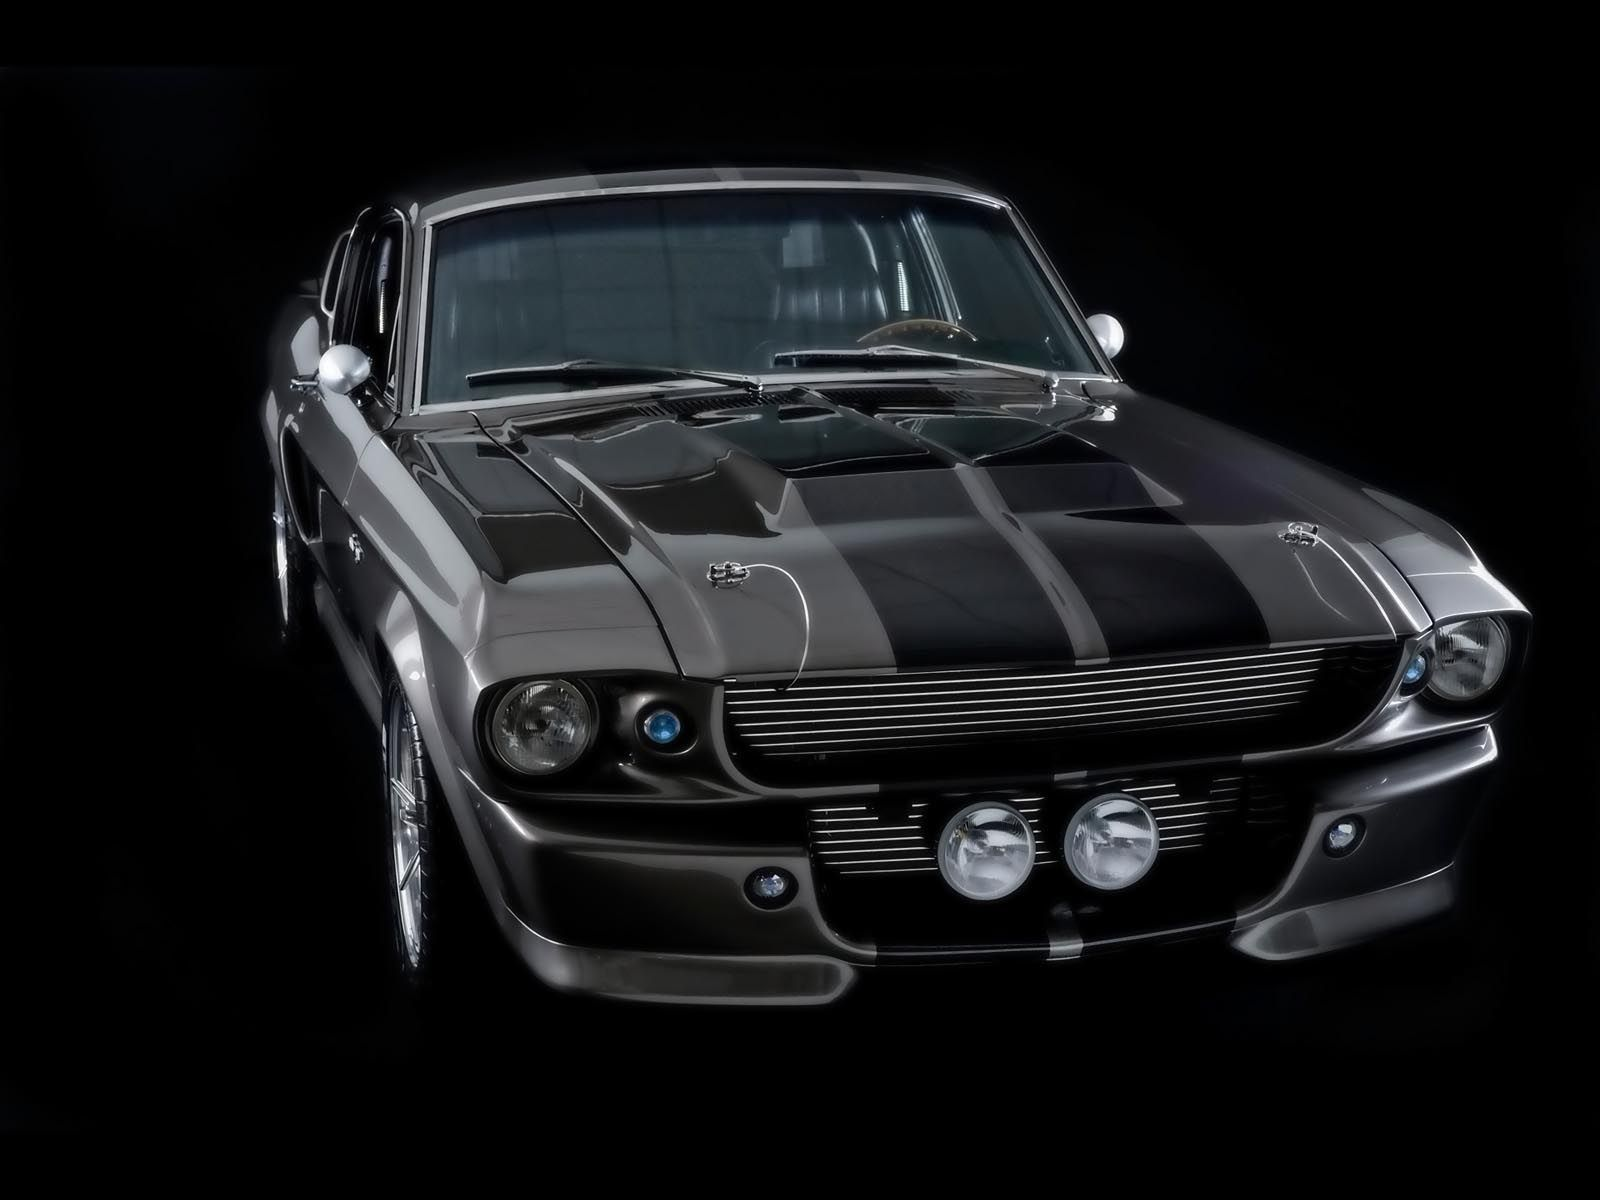 ford mustang shelby gt500 eleanor. Black Bedroom Furniture Sets. Home Design Ideas